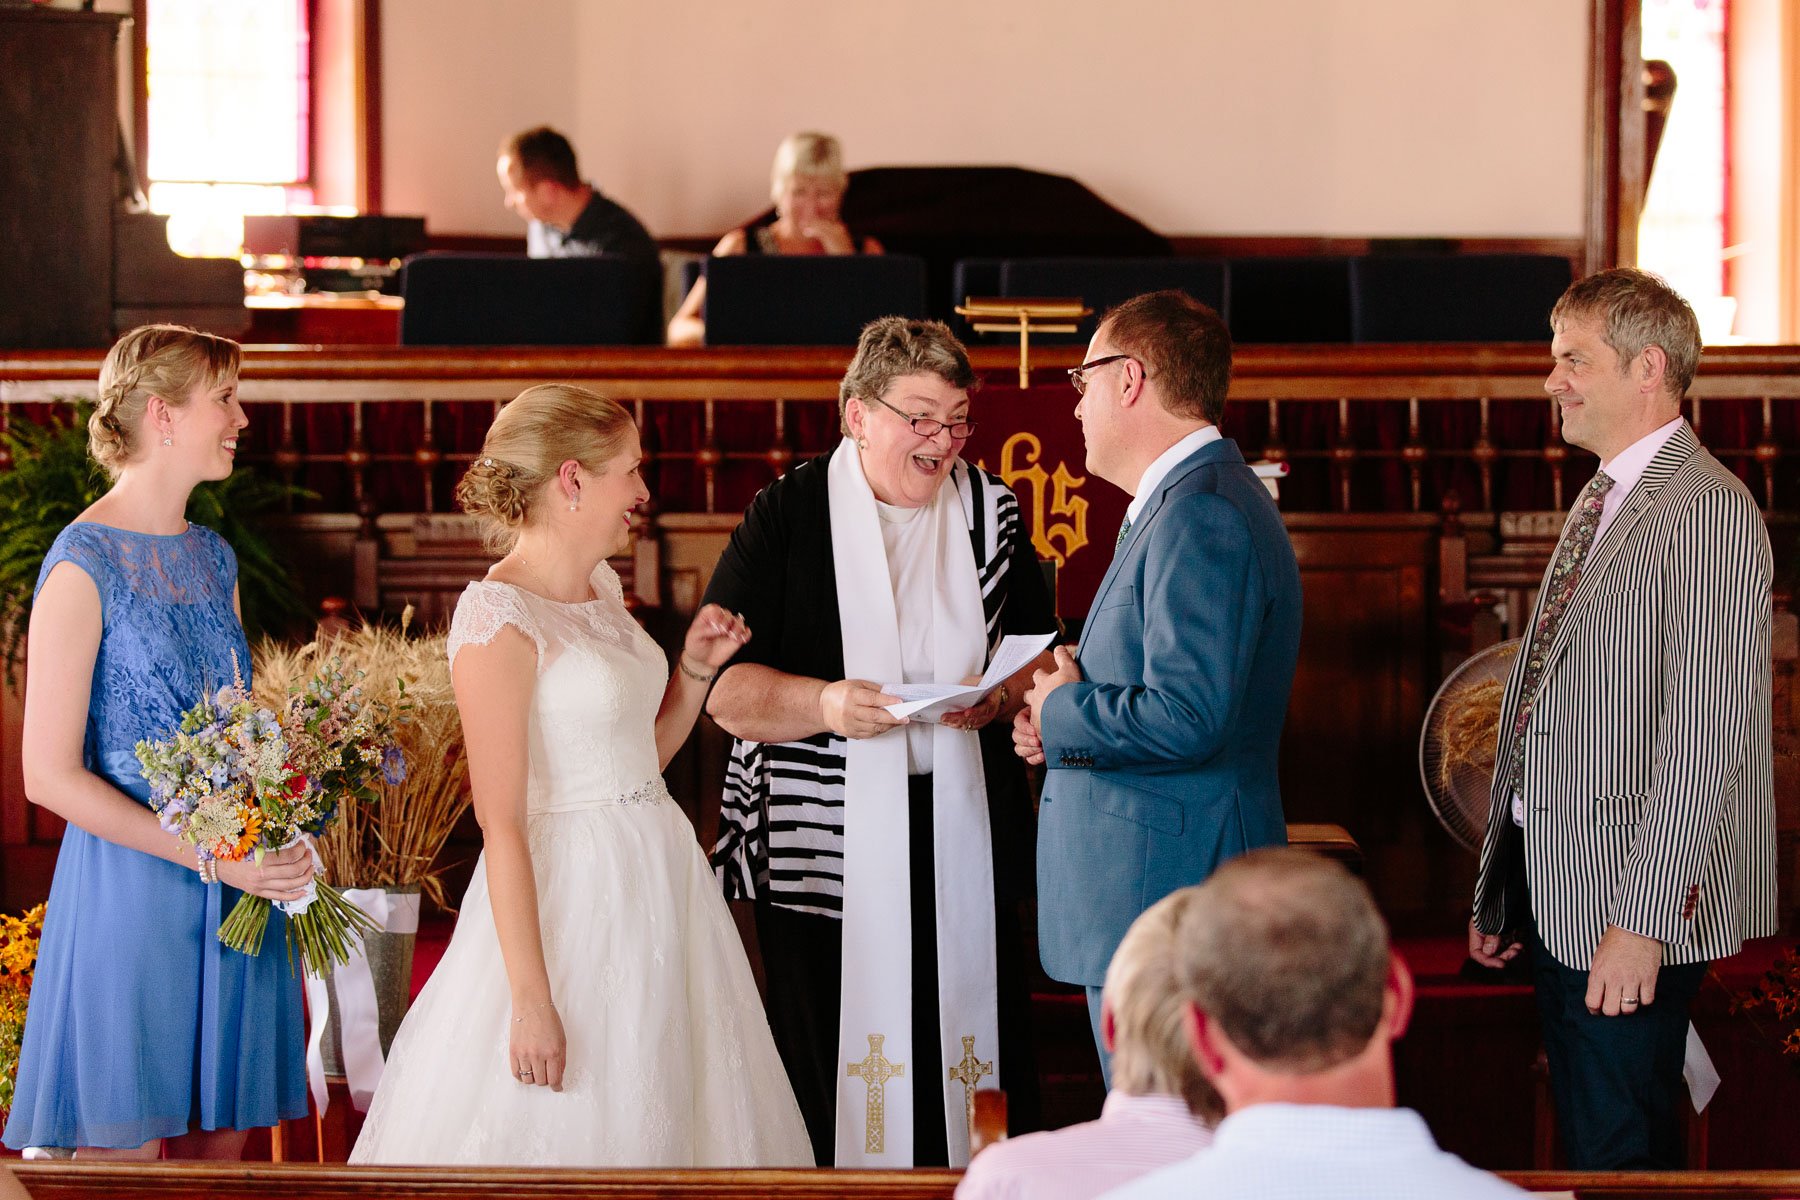 The female minister of this United Church congregation laughs with the bride and groom during ceremony at intimate rural wedding.